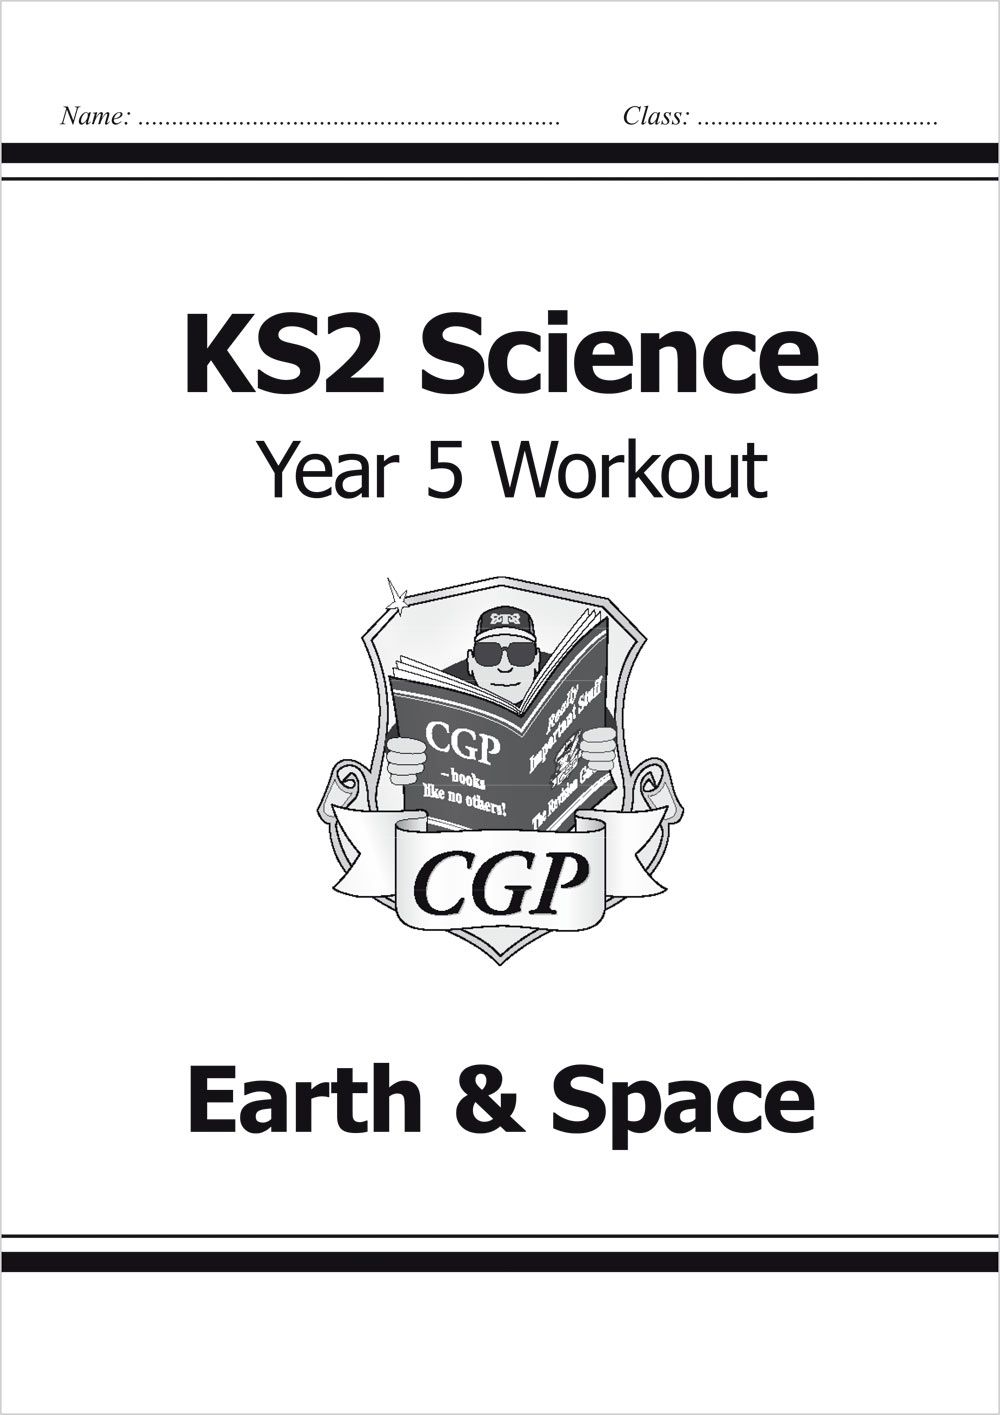 S5C22 - KS2 Science Year Five Workout: Earth & Space